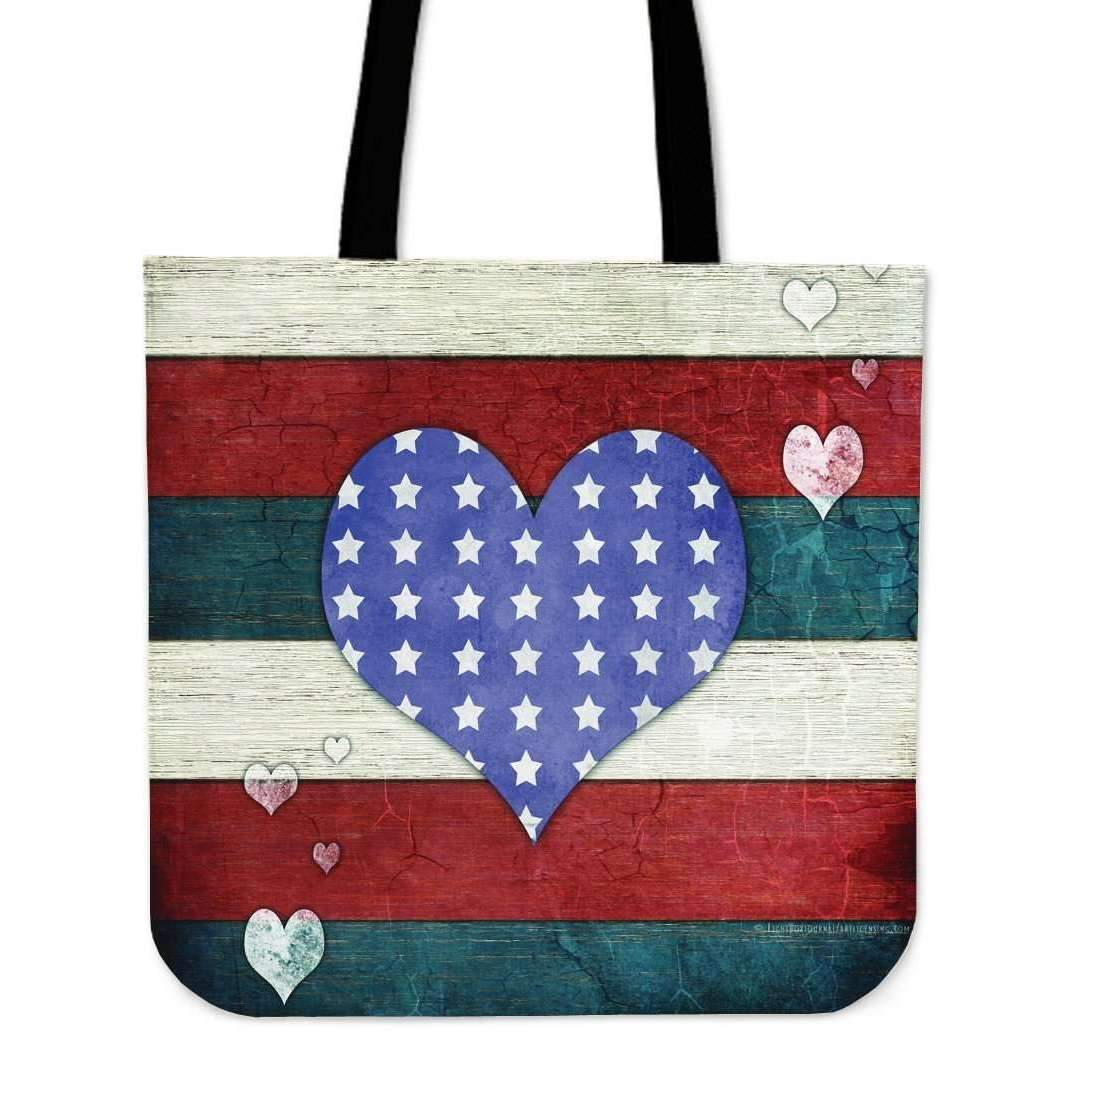 Shopeholic:Stars and Stripes - Tote Bags